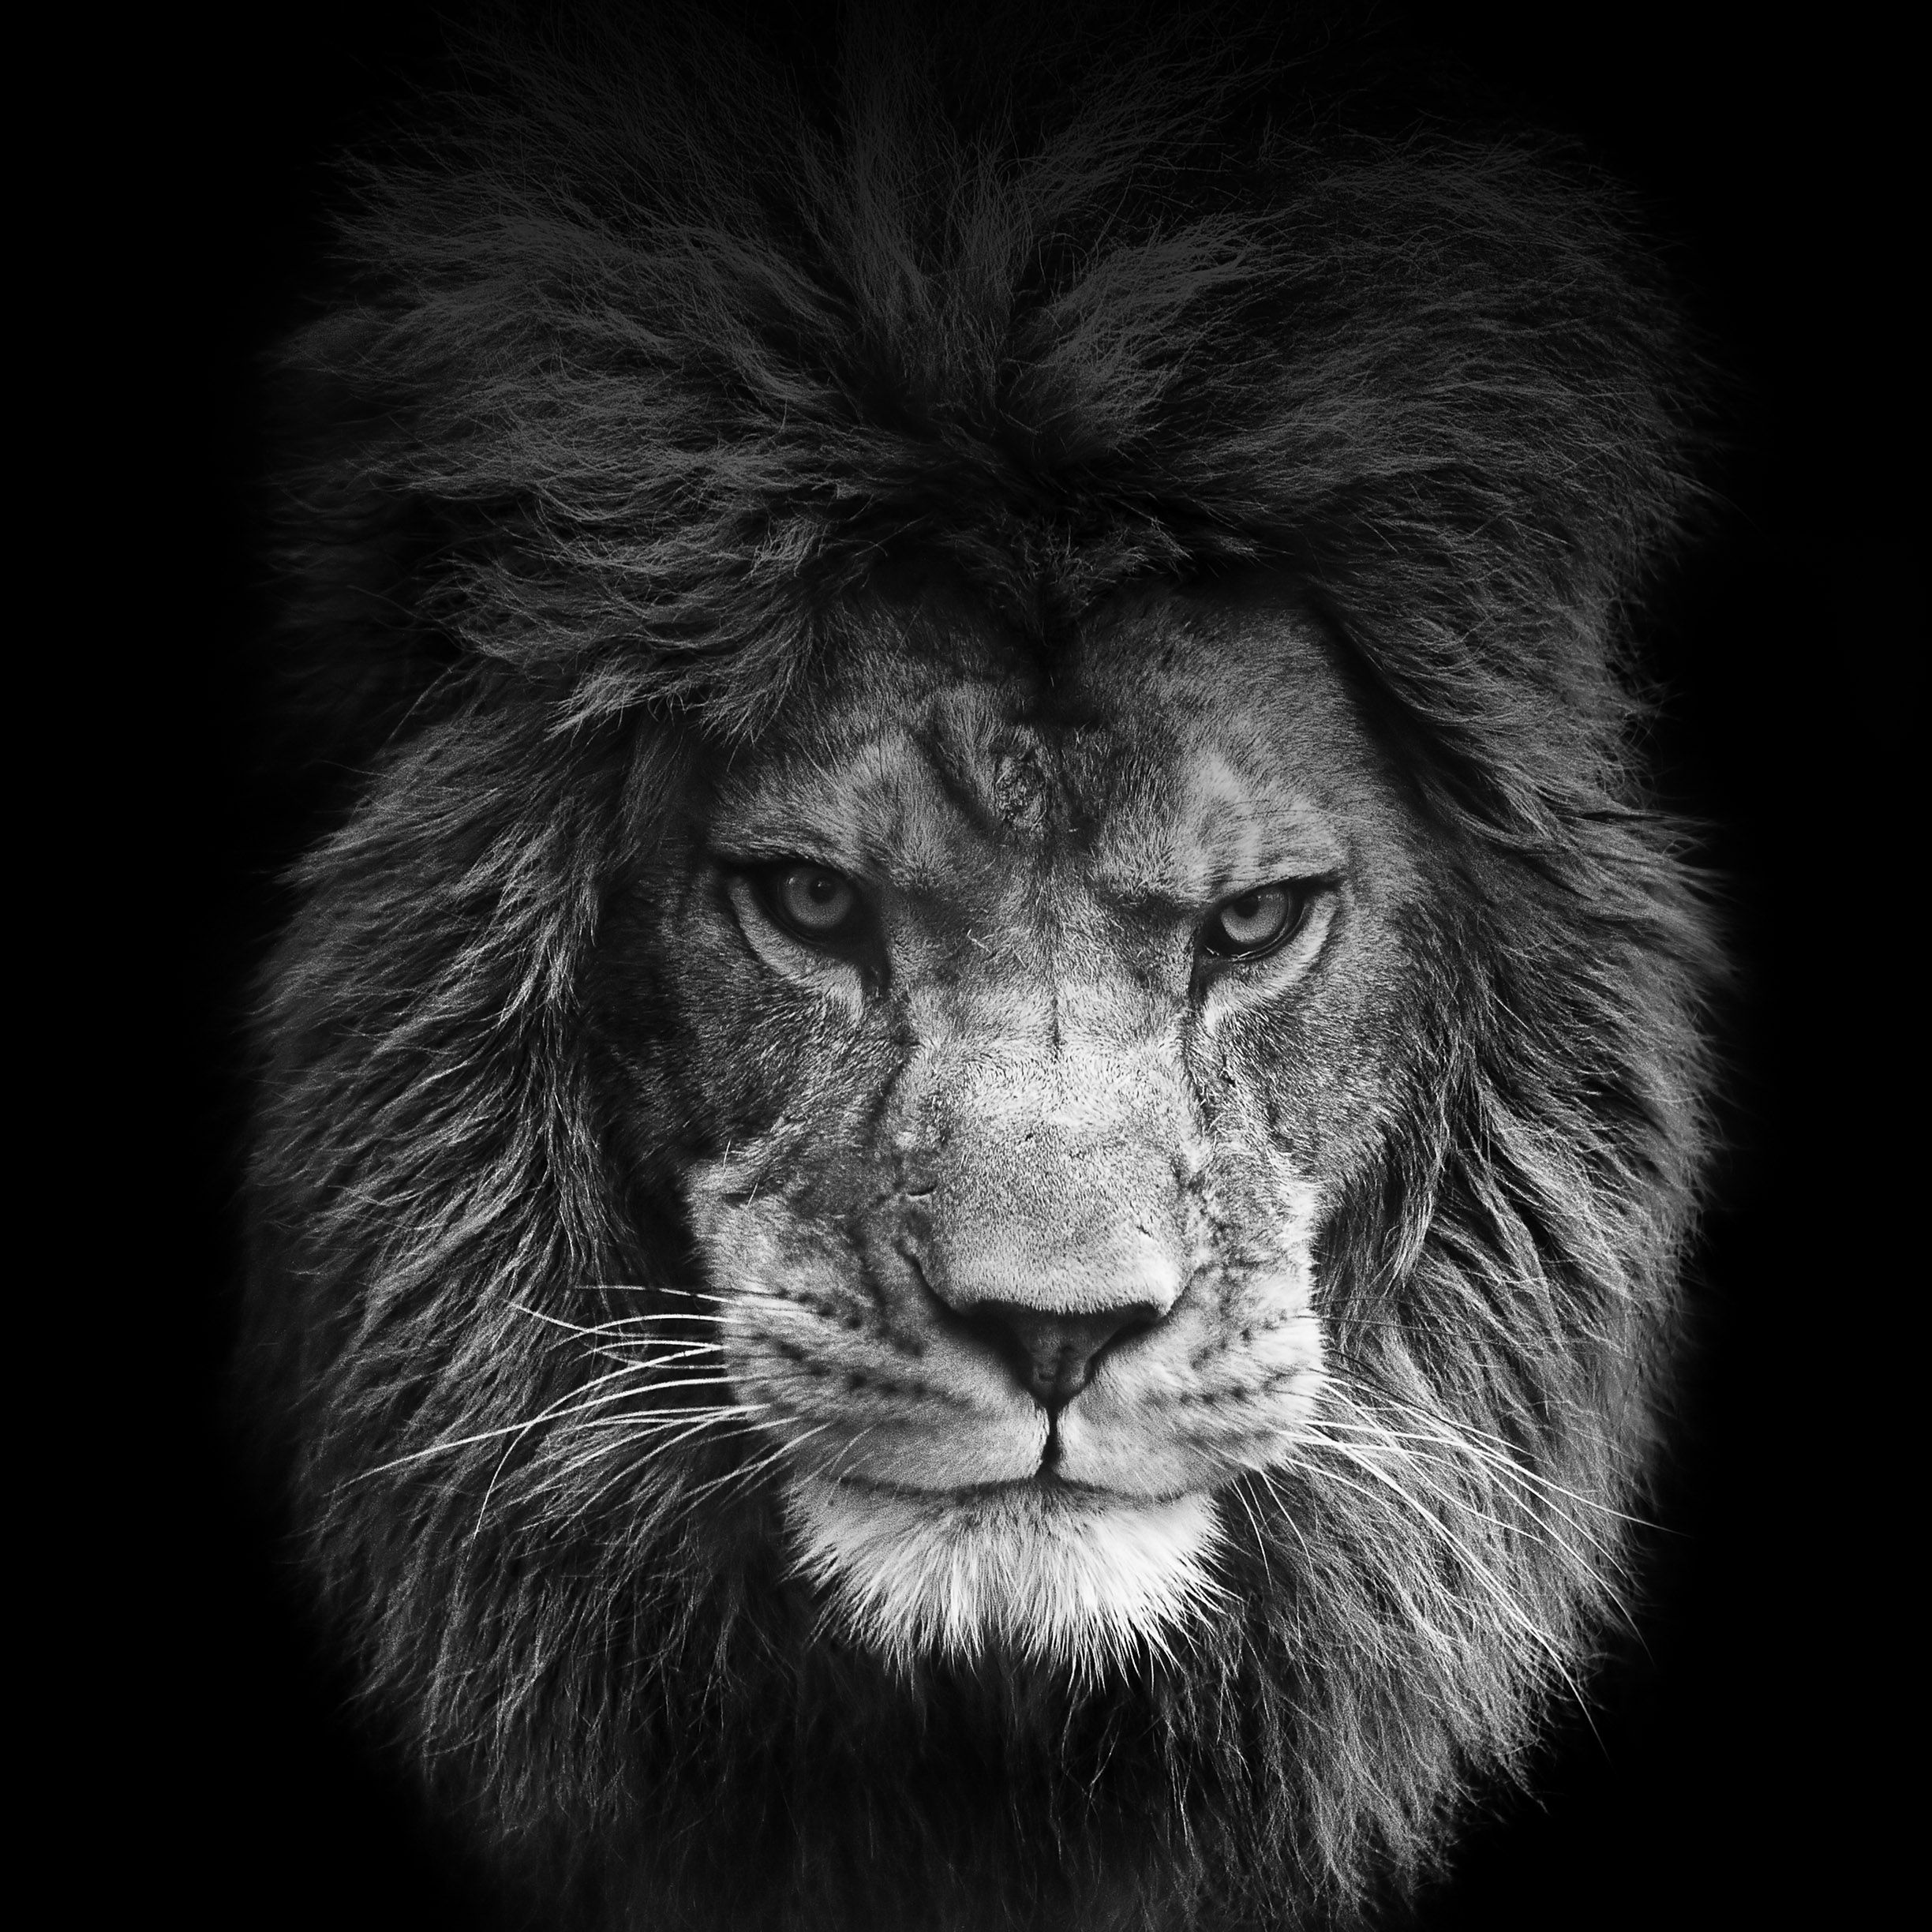 Hd wallpaper gallery - Best 25 Lion Hd Wallpaper Ideas On Pinterest Lion Images Lion Tattoo Images And Pretty Phone Wallpaper